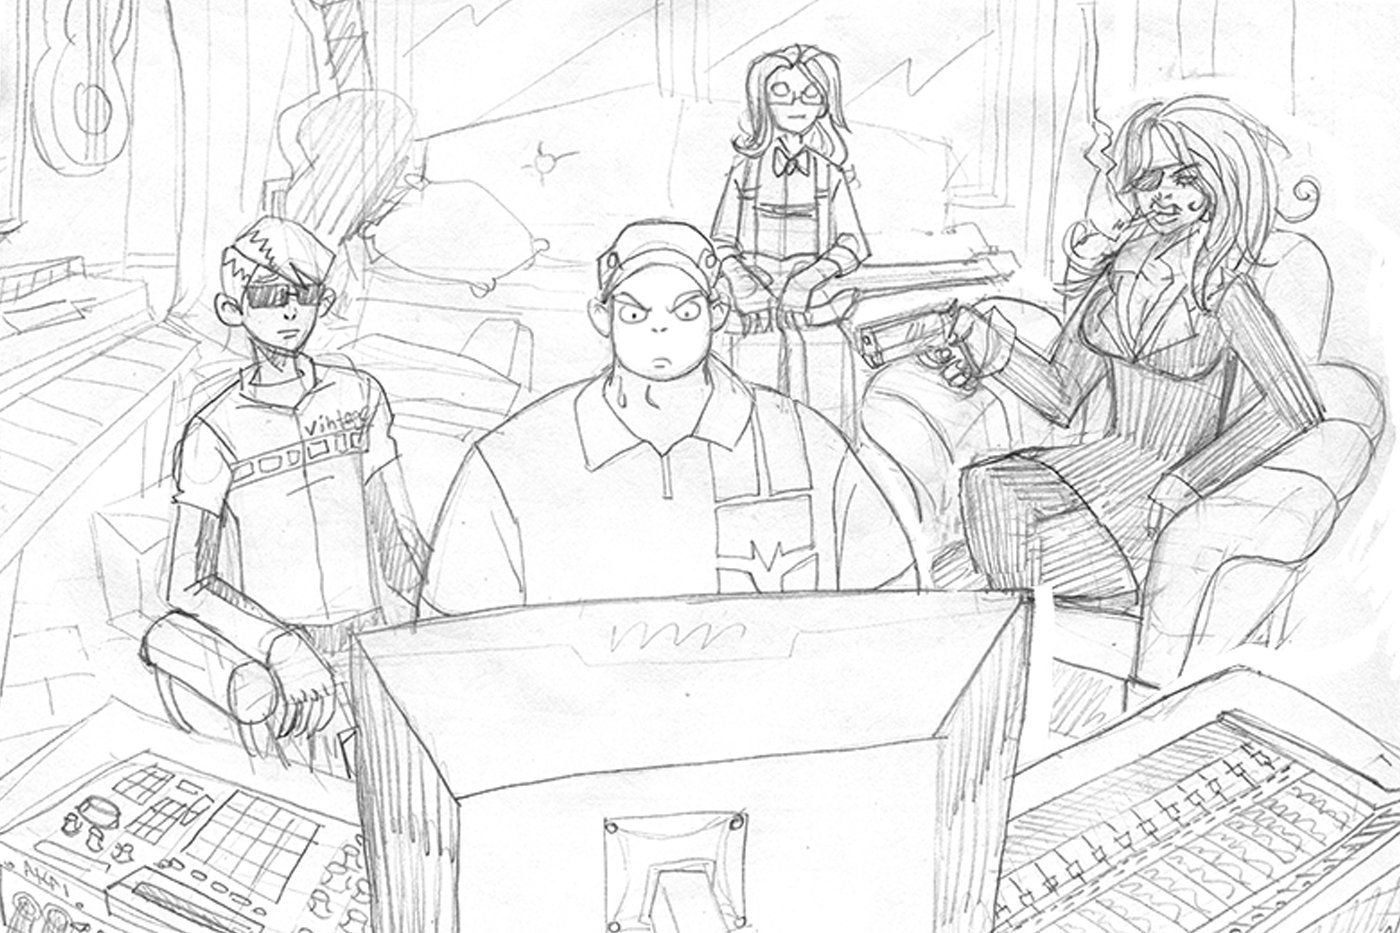 STUDIO BUMS®   Phase Three artwork sketch for the comic strip titled  KILL TRAP  illustrated by Lemon5ky.